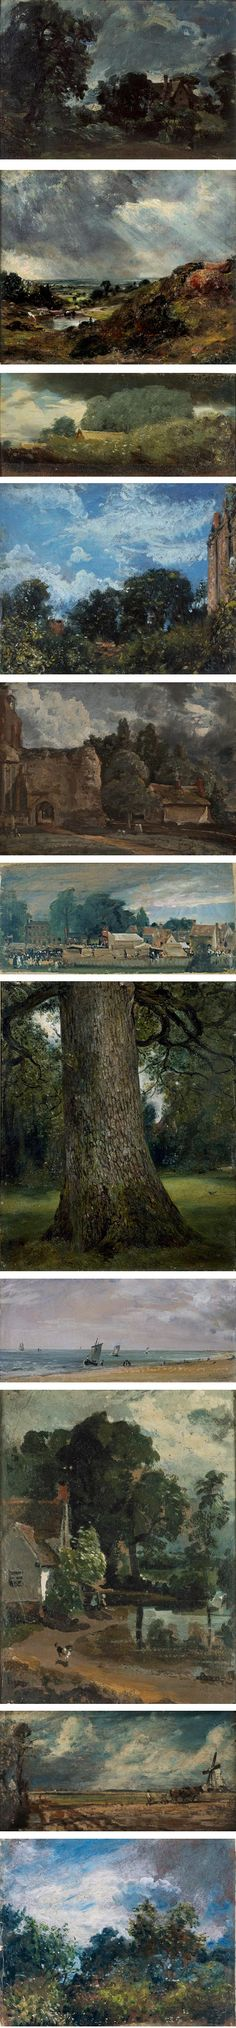 Constable's oil sketches